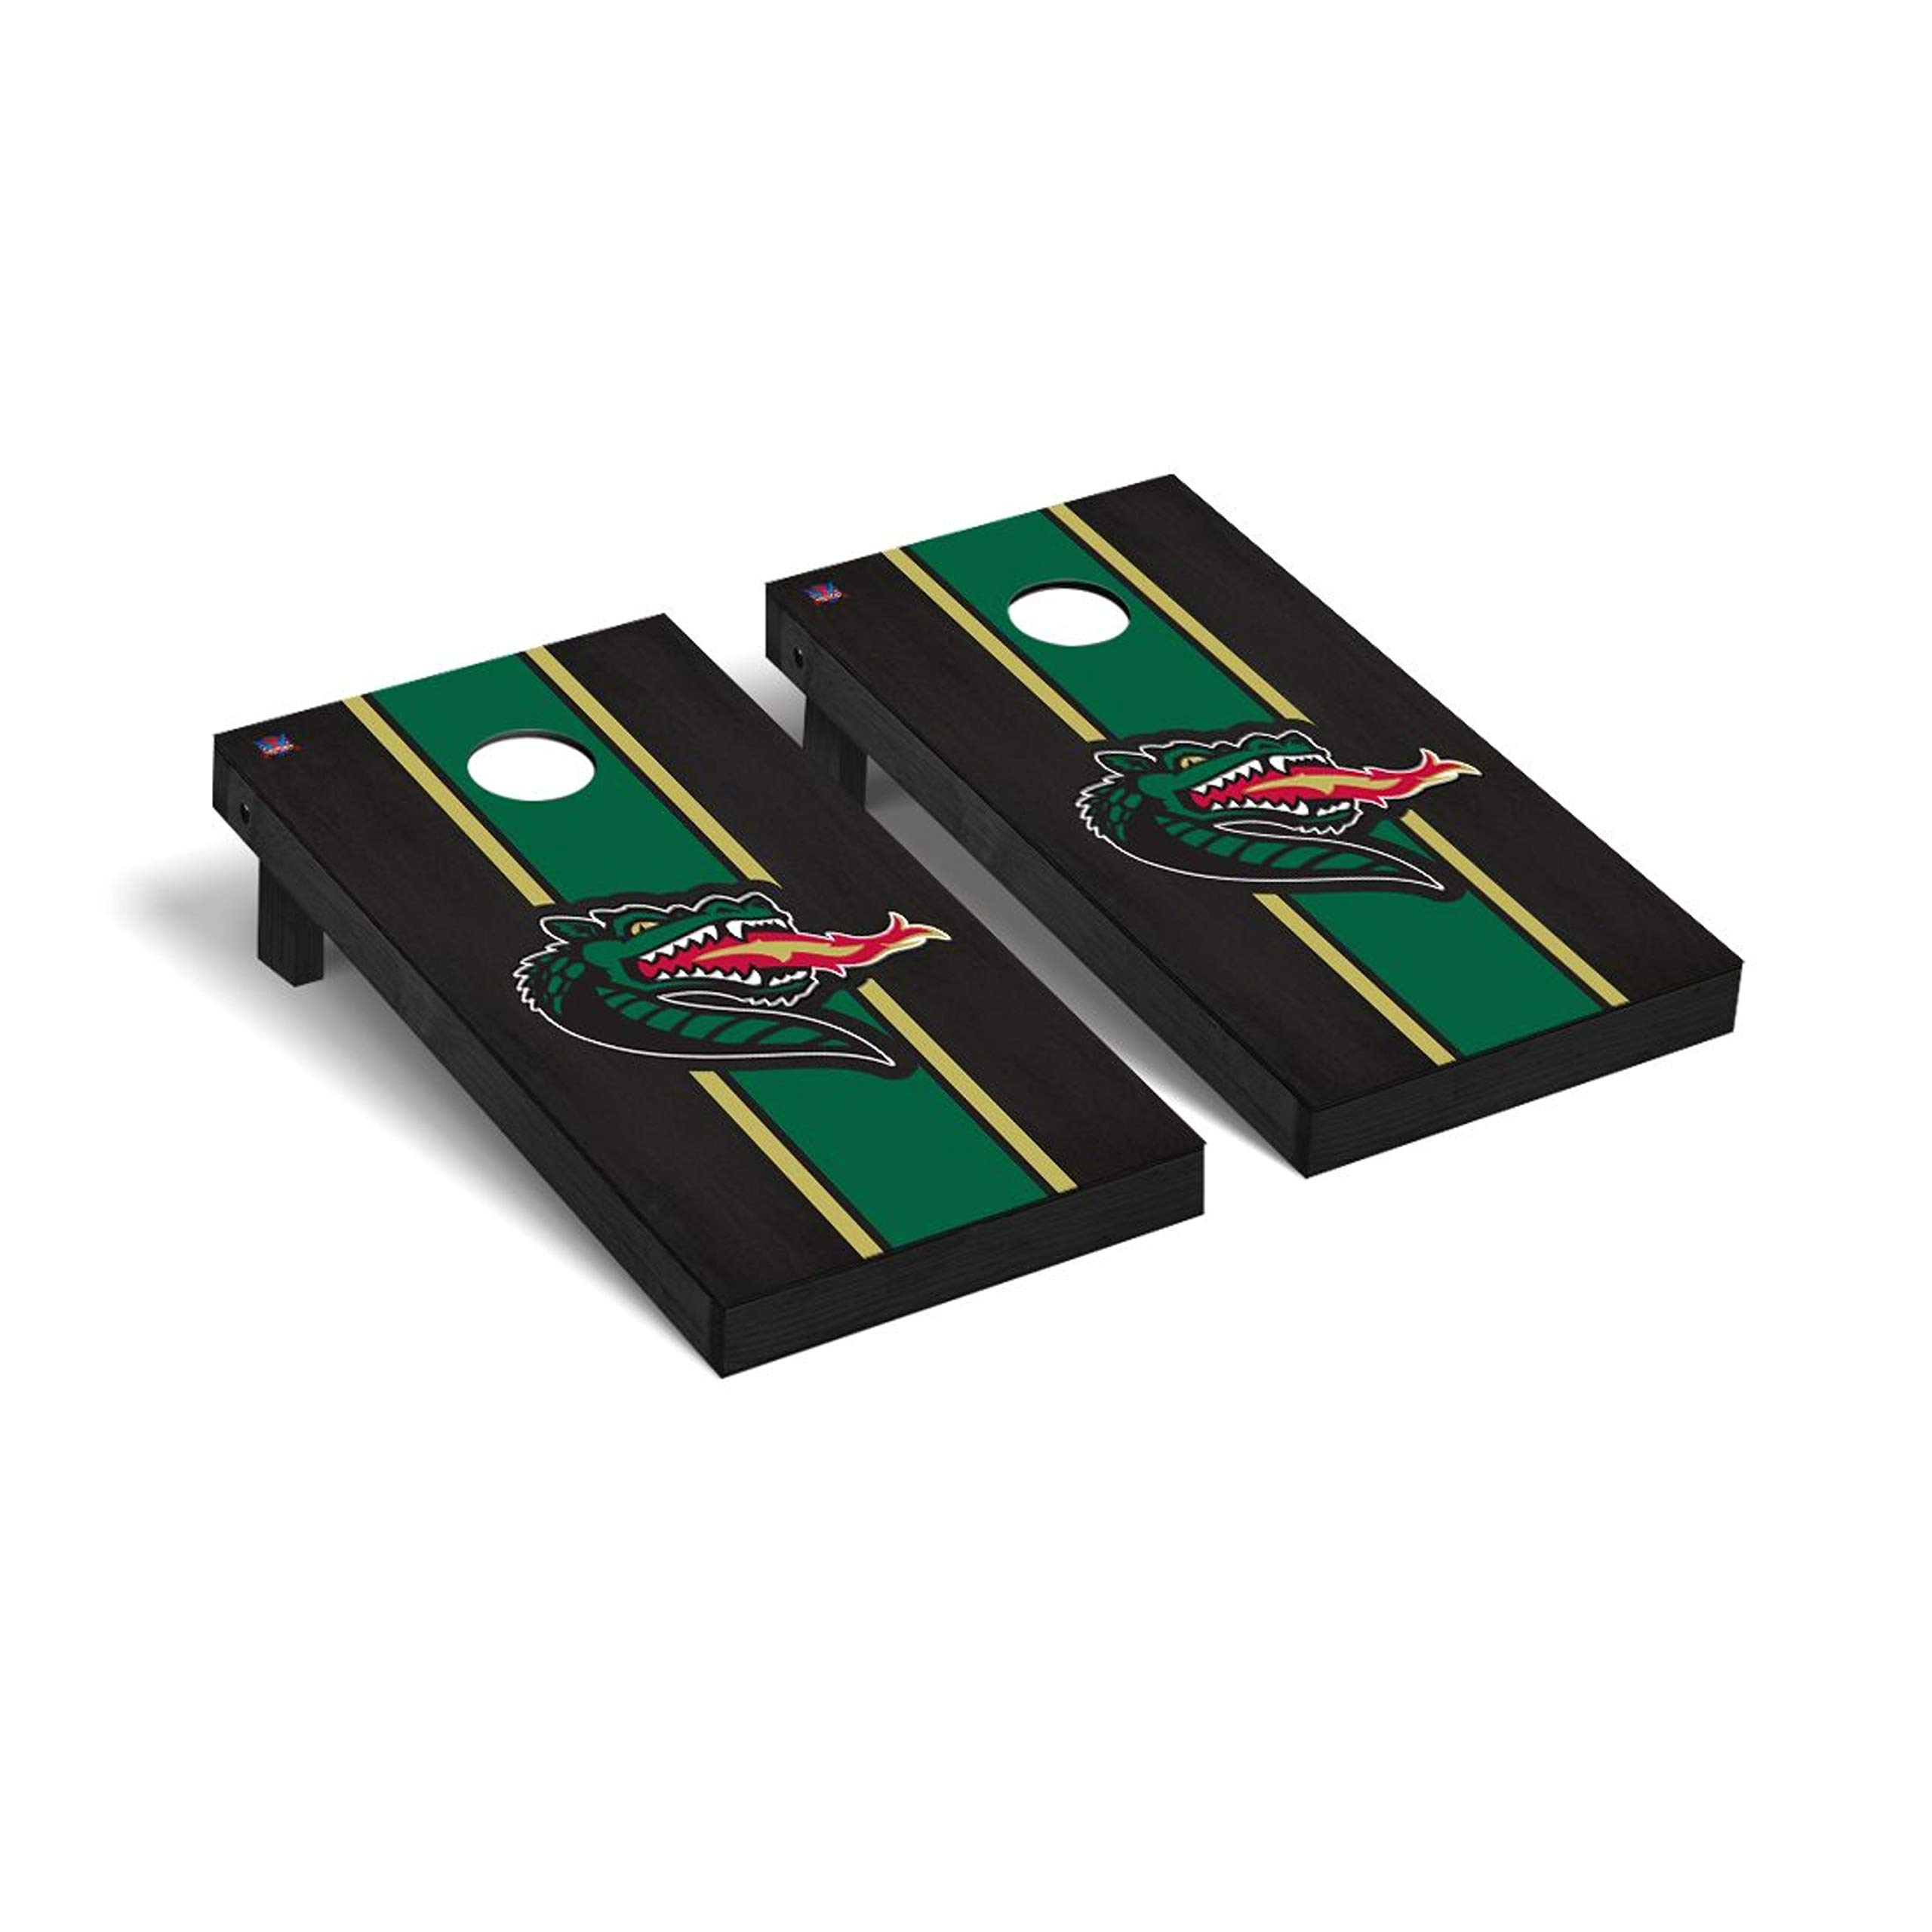 Victory Tailgate Regulation Collegiate NCAA Onyx Stained Stripe Series Cornhole Board Set - 2 Boards, 8 Bags - University of Alabama at Birmingham Blazers by Victory Tailgate